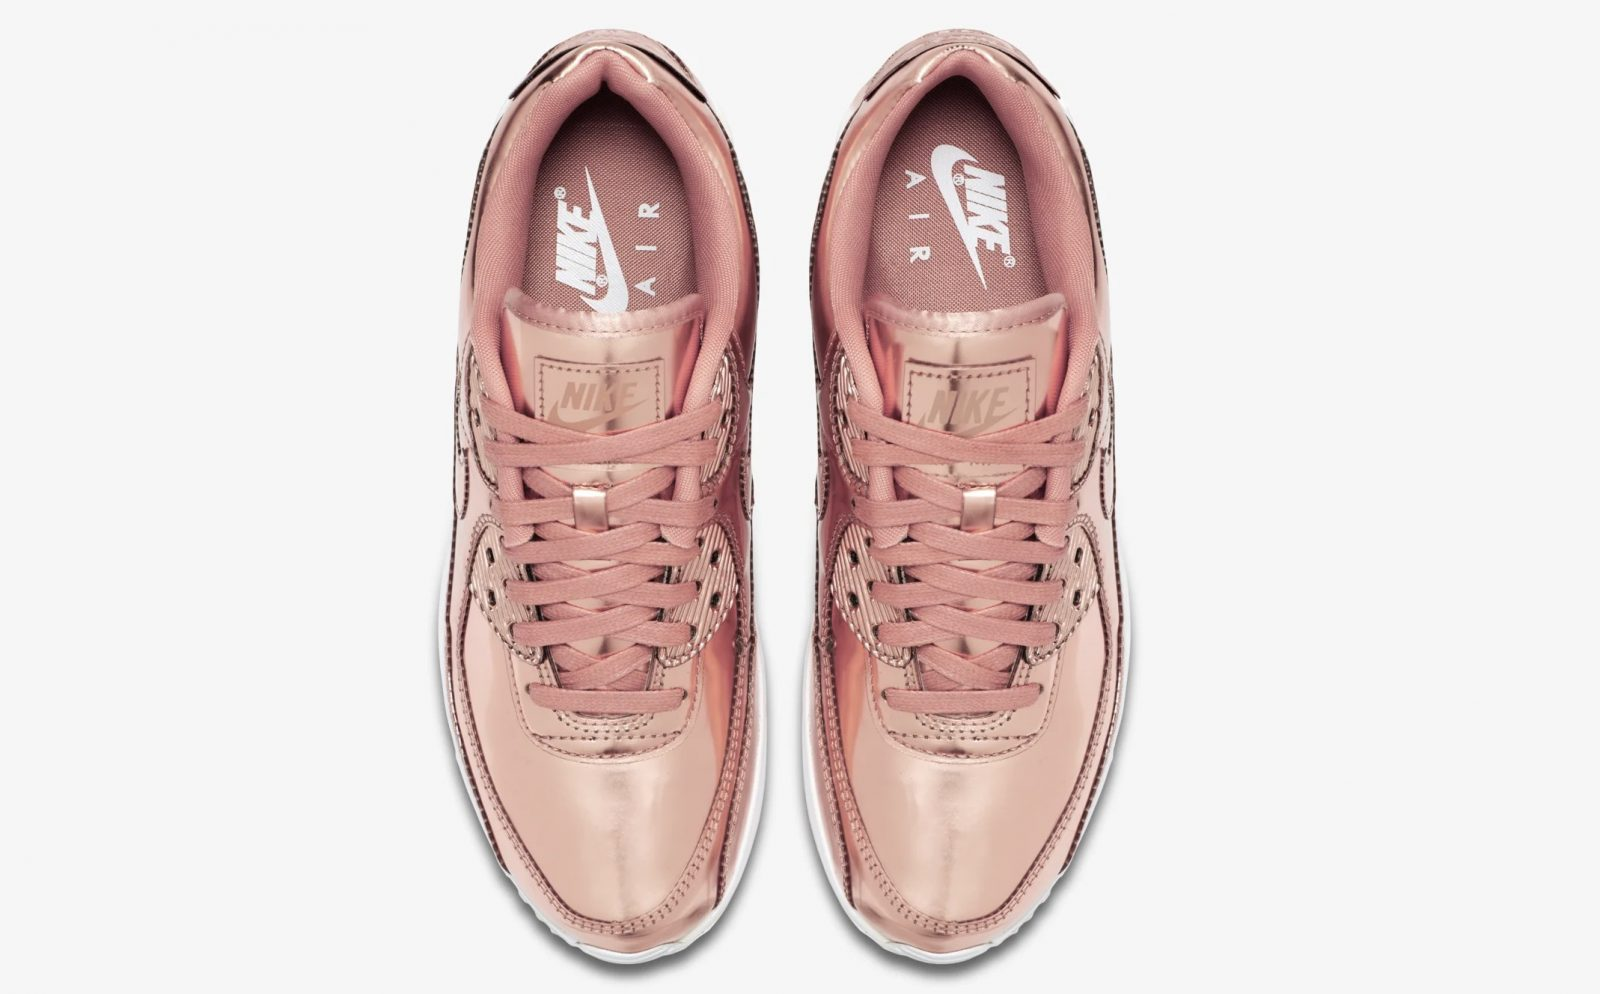 Nike Air Max 90 Rose Gold Liquid Metal laces